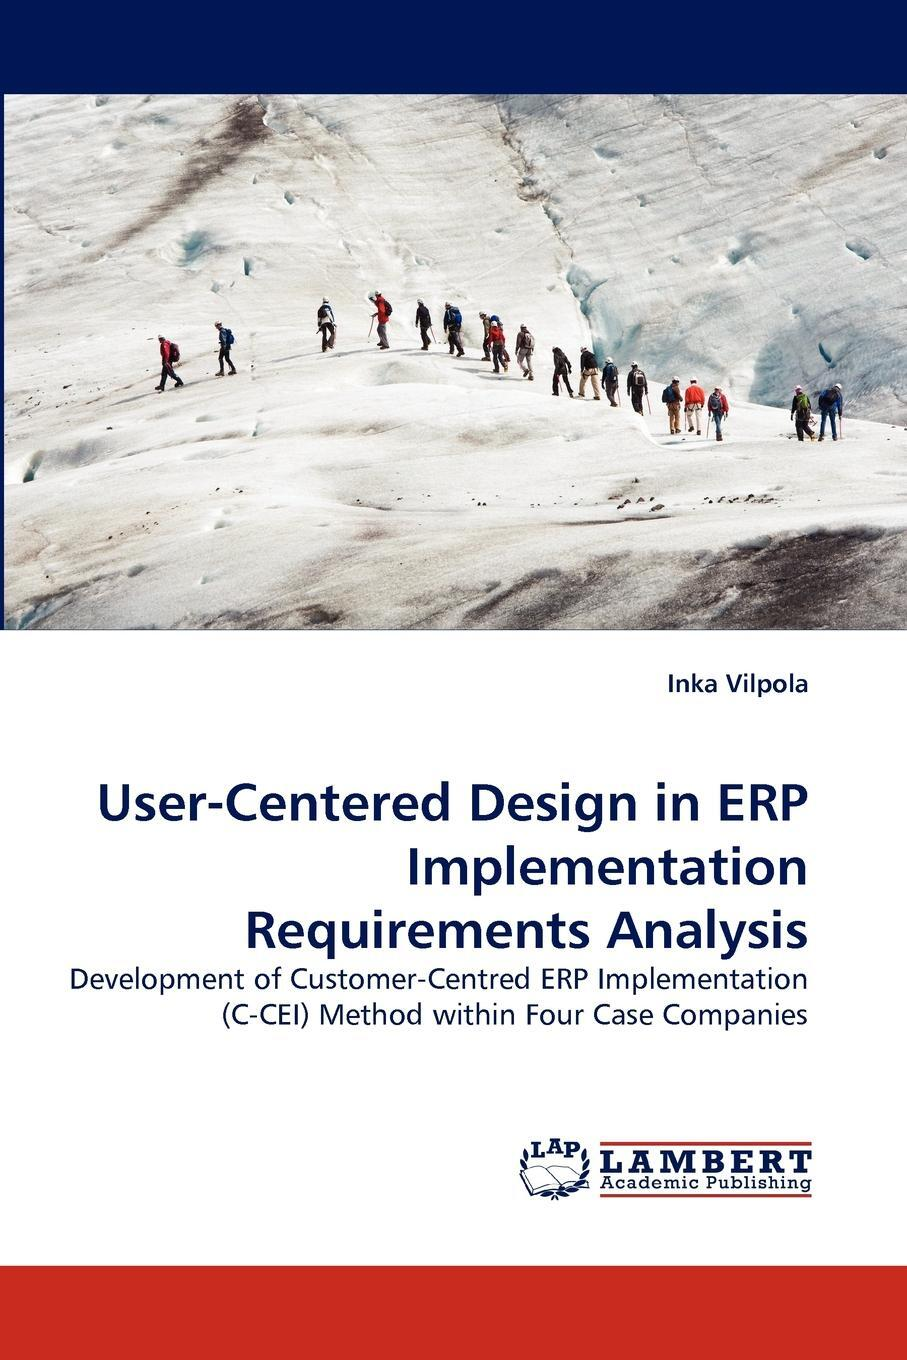 Inka Vilpola. User-Centered Design in ERP Implementation Requirements Analysis